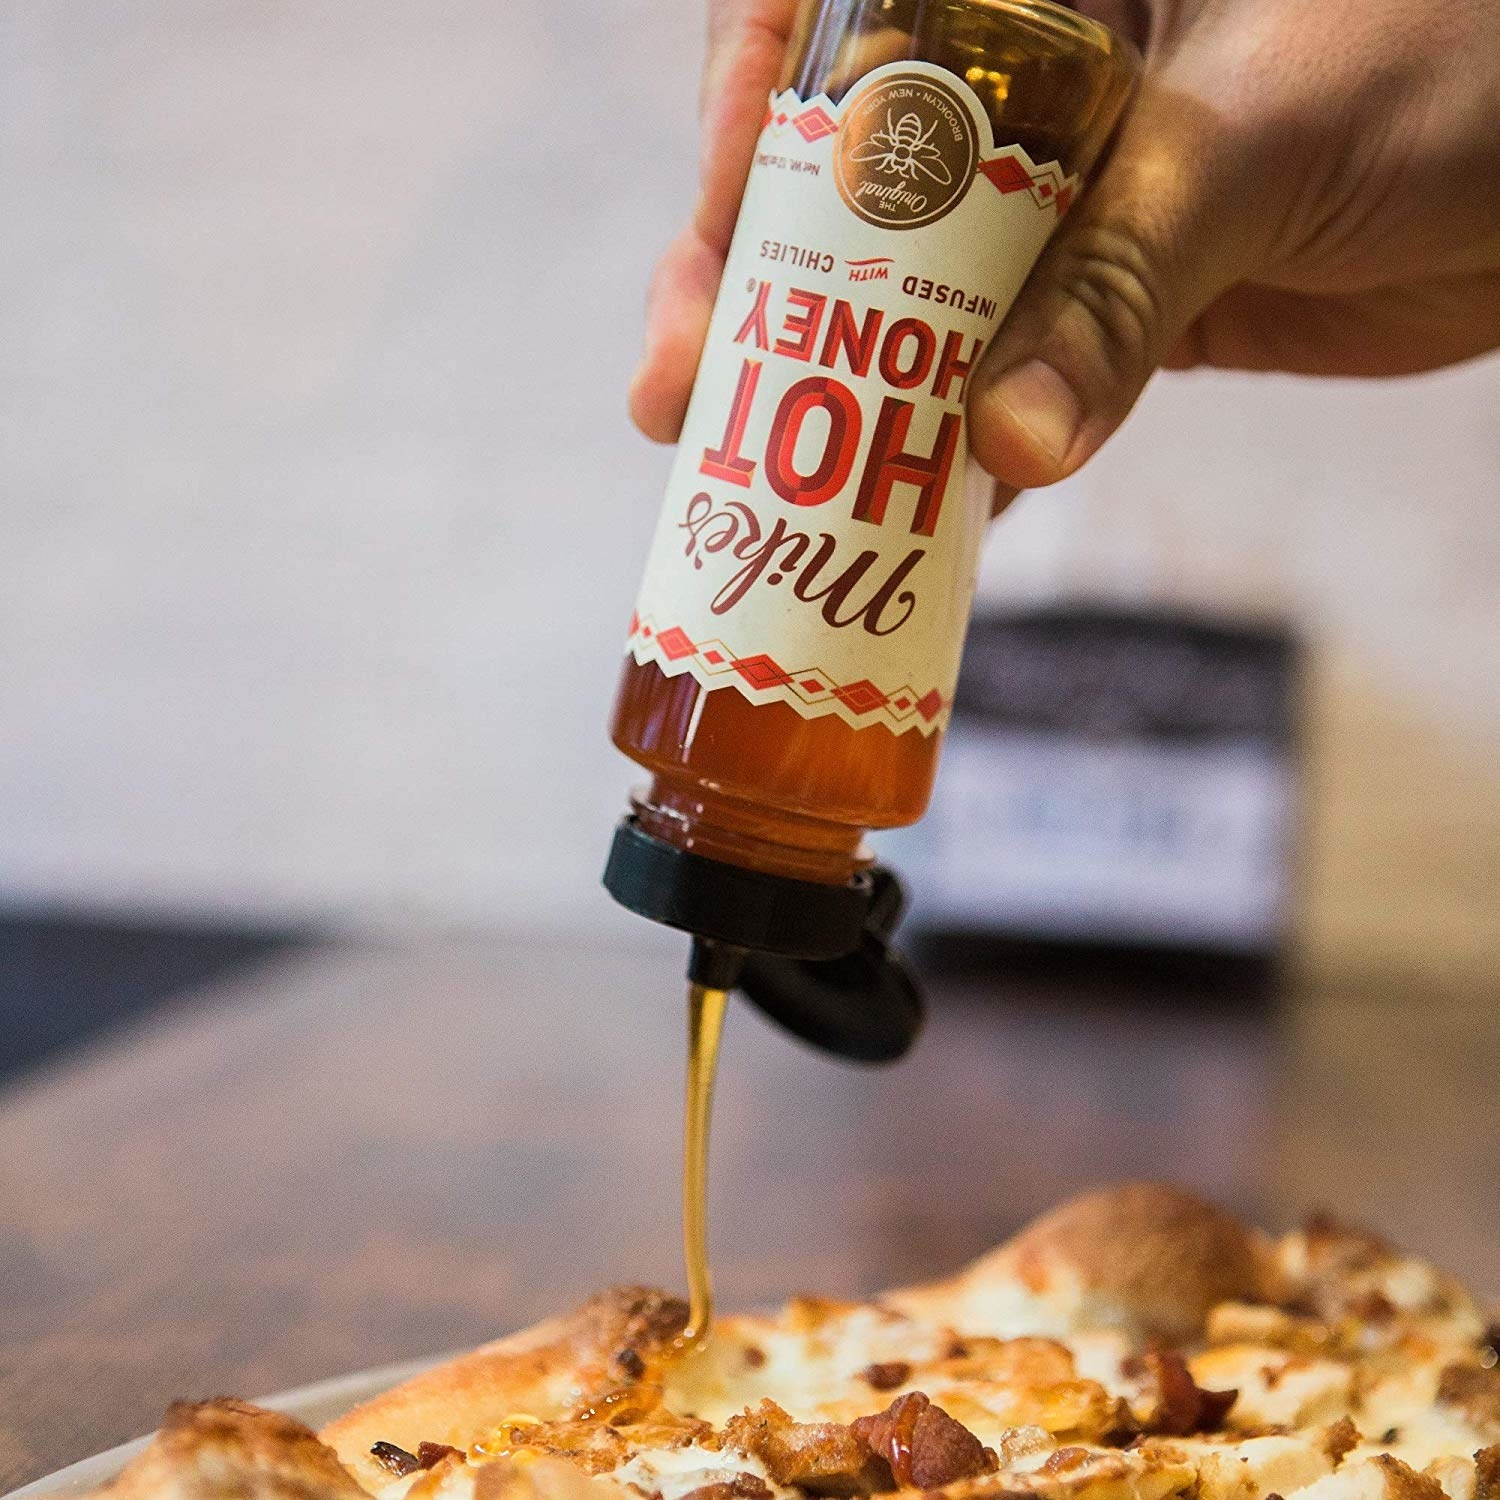 An image of the honey being drizzled onto pizza